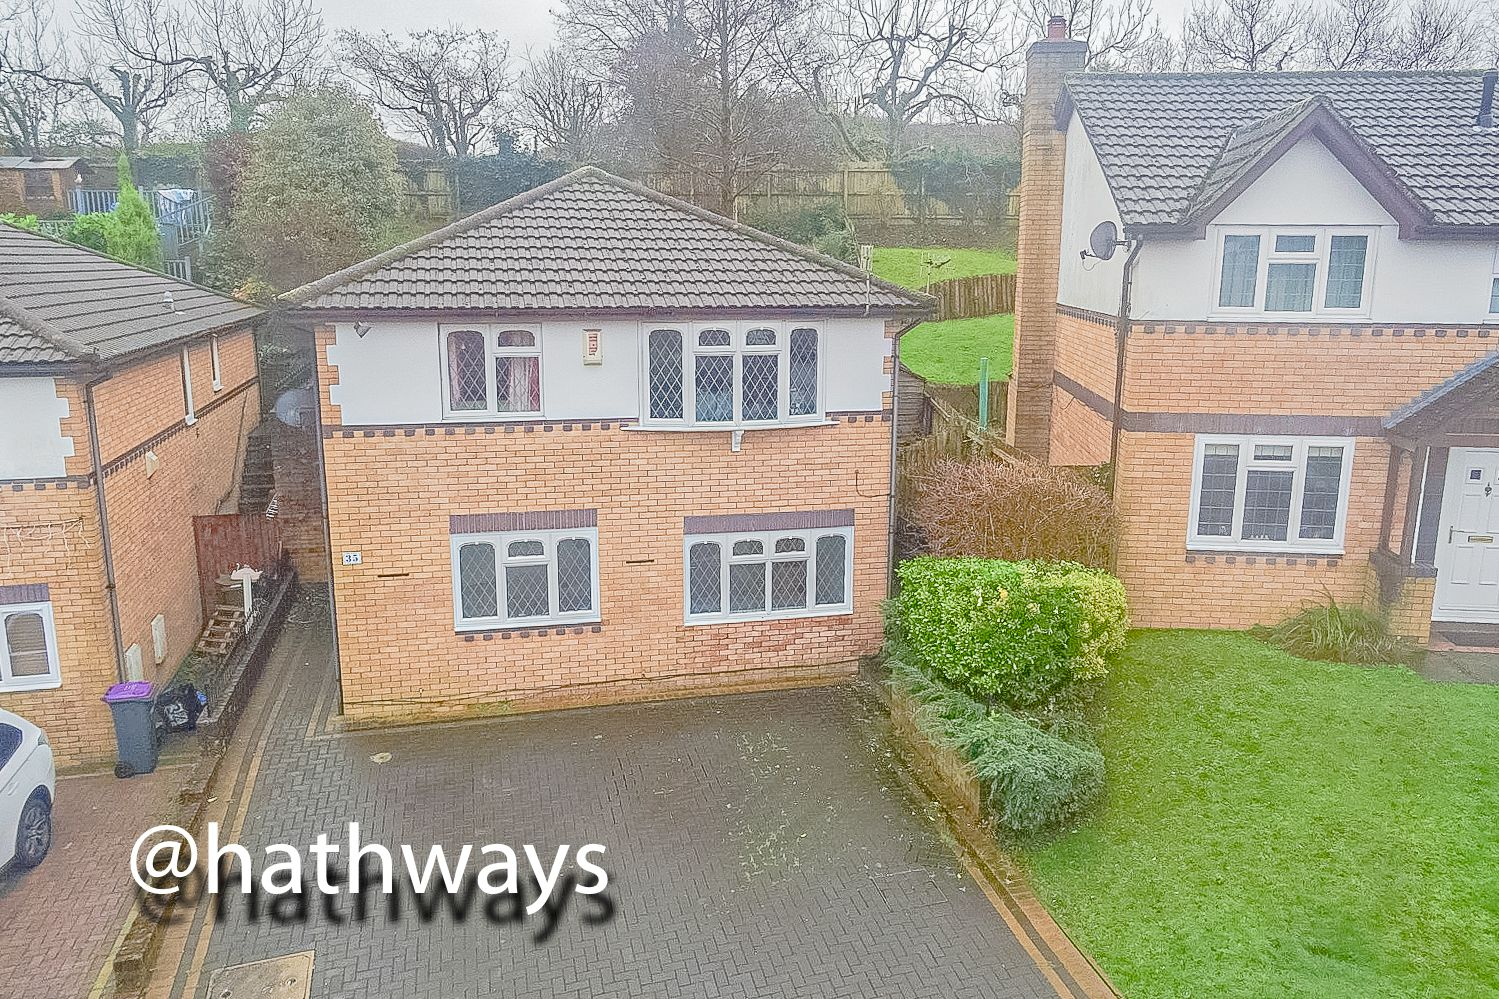 4 bed house for sale in Pant Yr Heol Close - Property Image 1